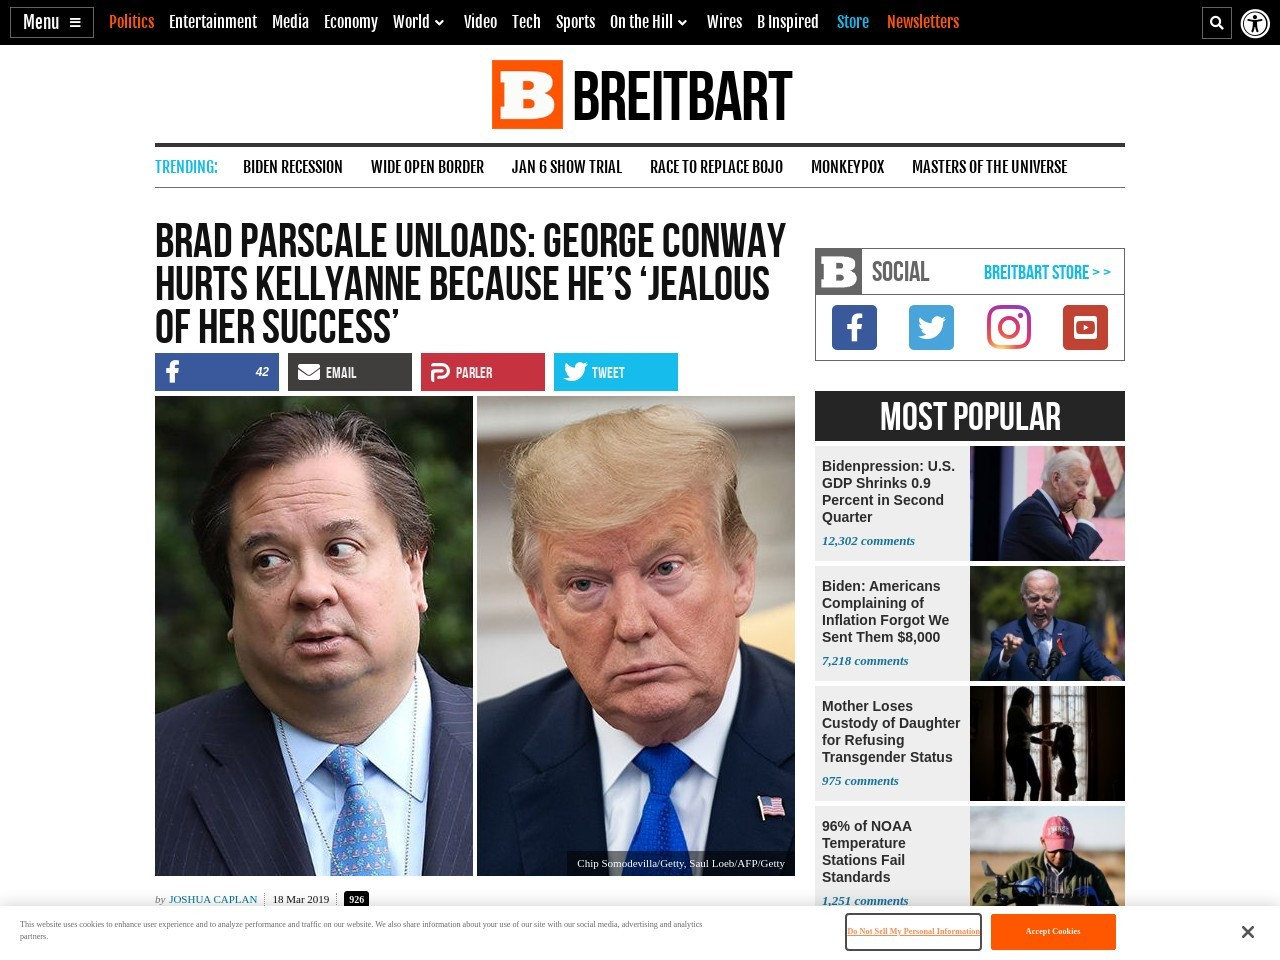 Brad Parscale: George Conway Hurts Kellyanne Because He's 'Jealous'